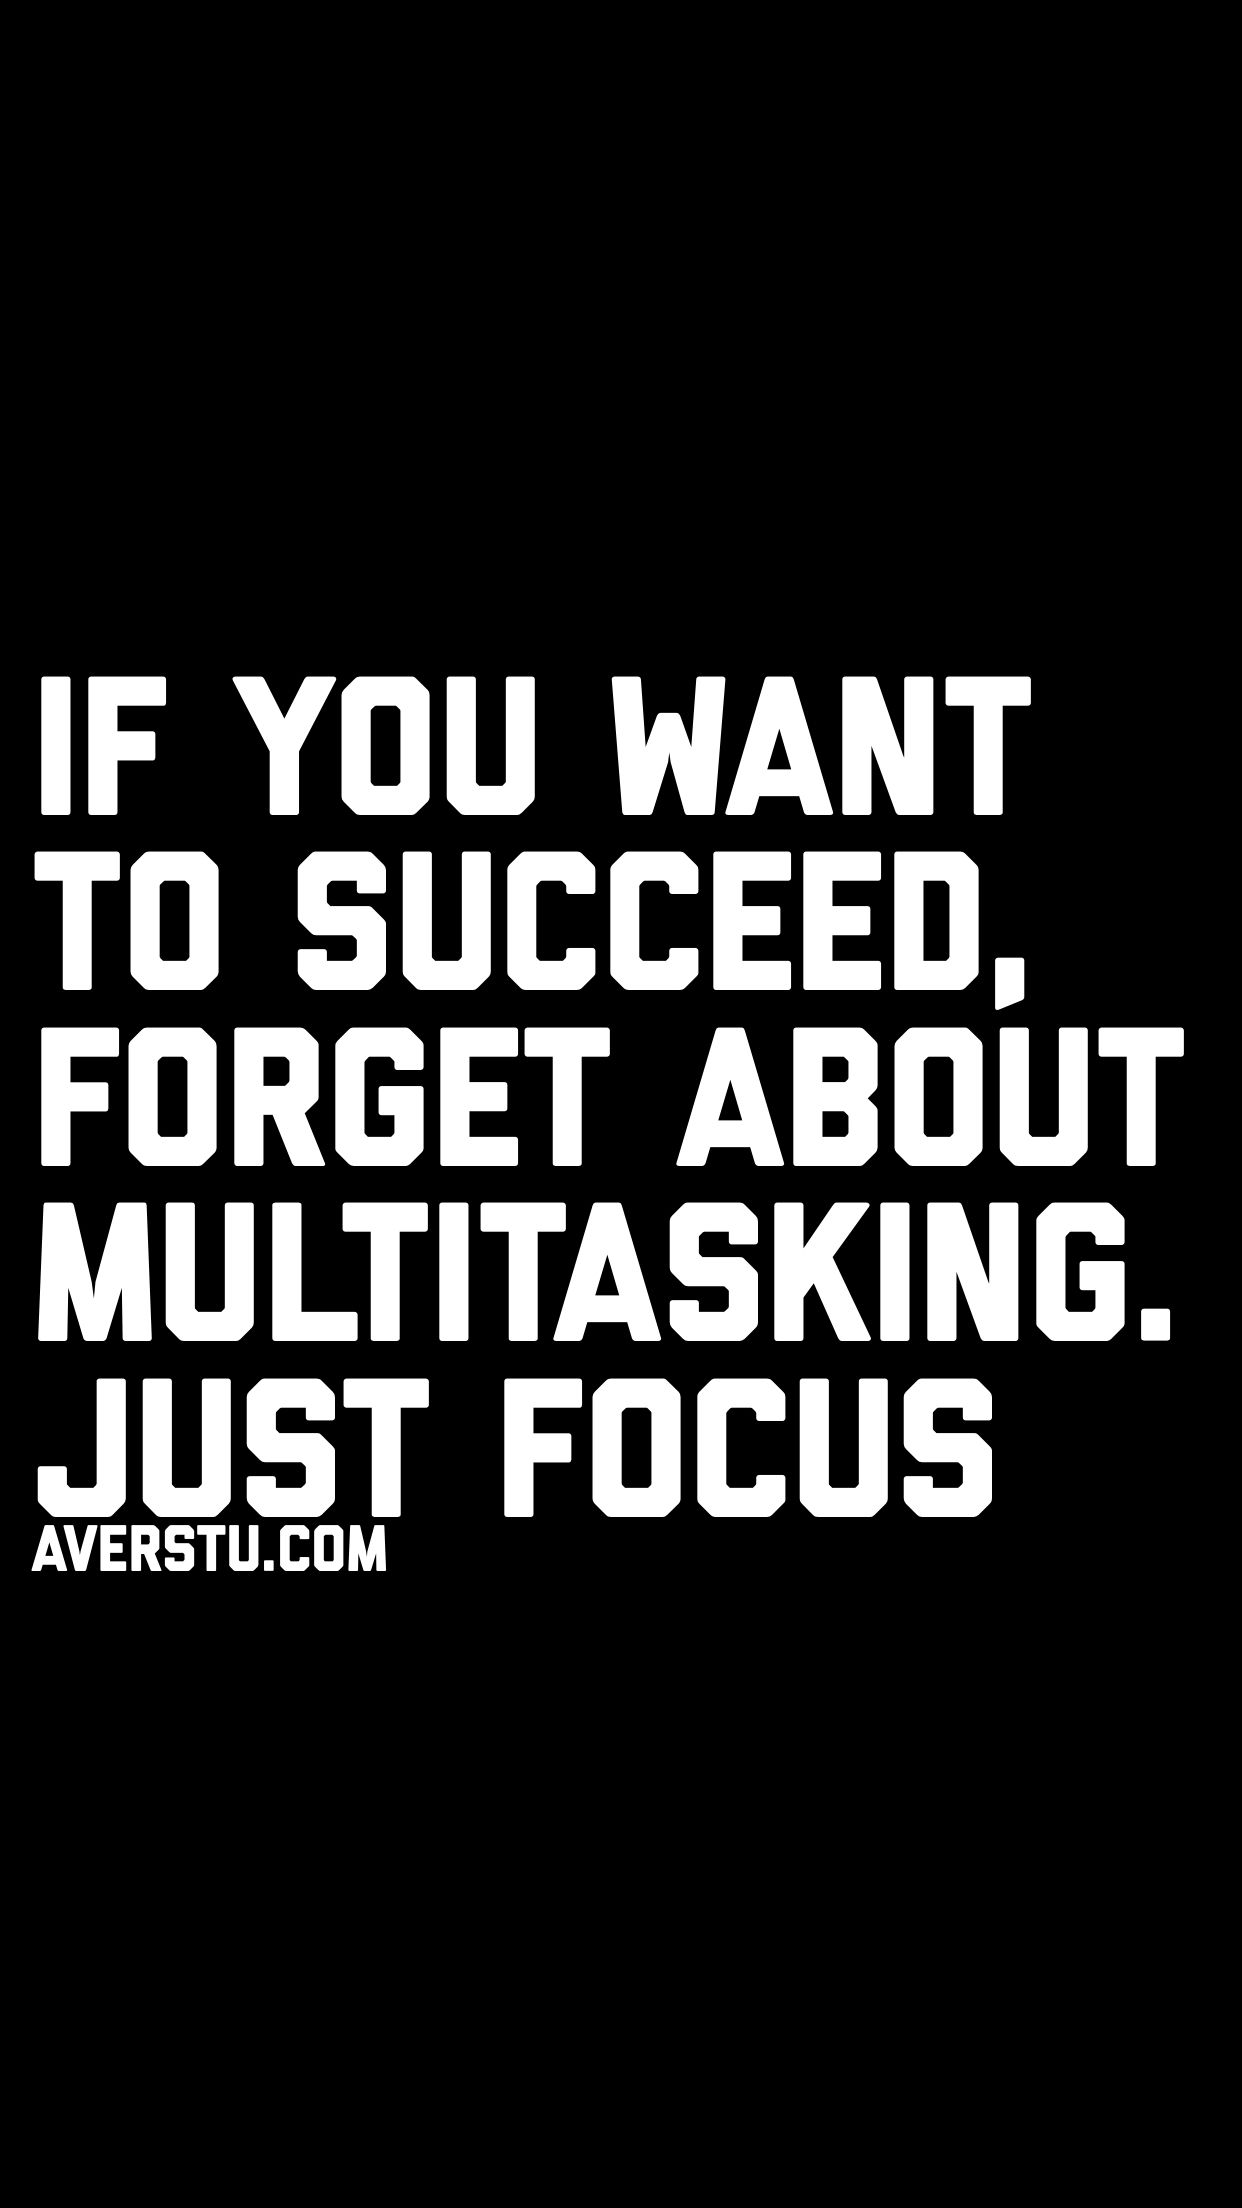 1200 Motivational Quotes (Part 7) (With images) | Focusing on ...